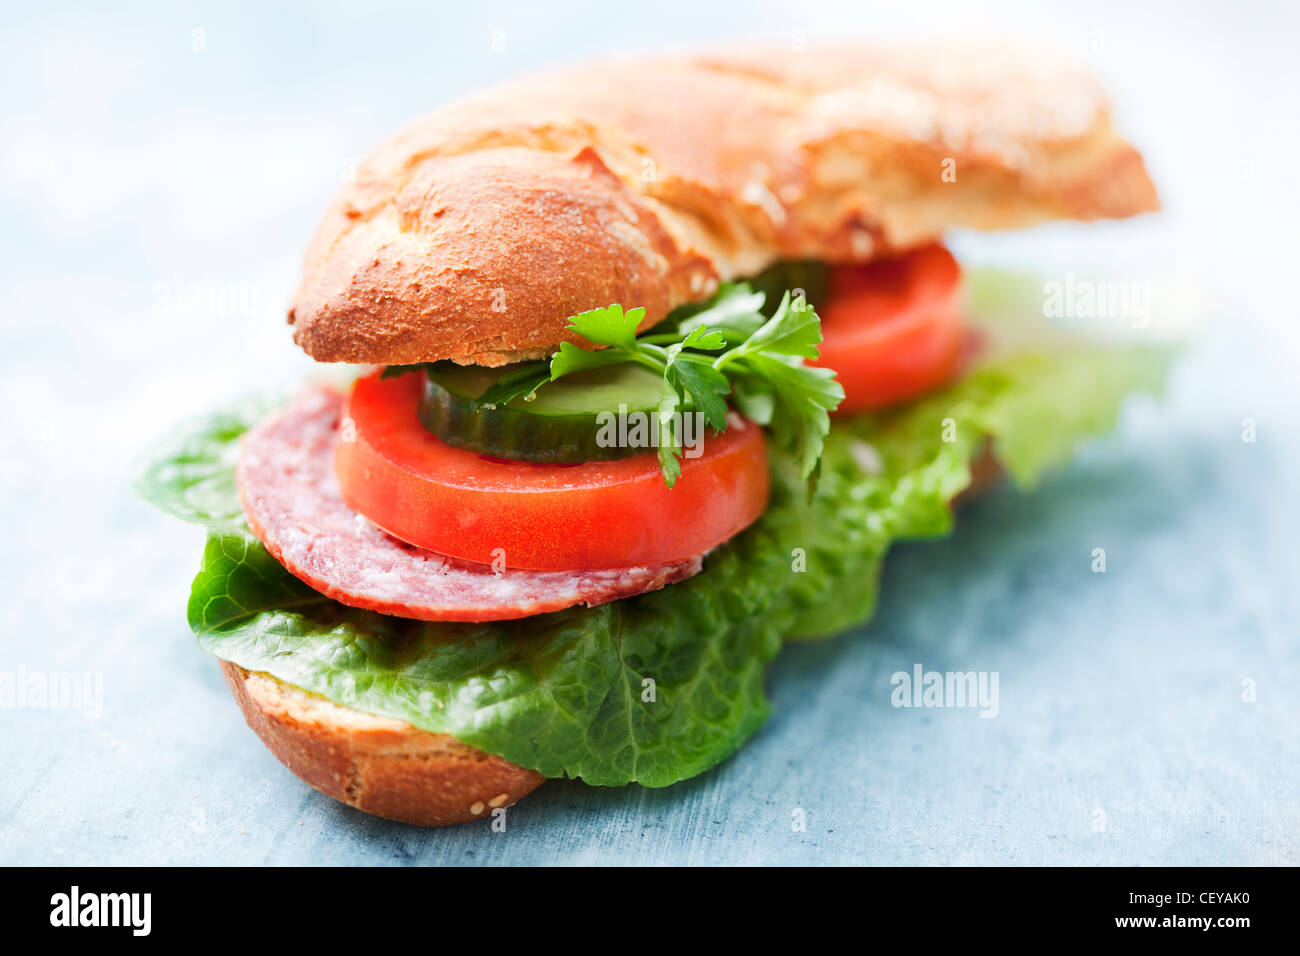 healthy sandwich - Stock Image